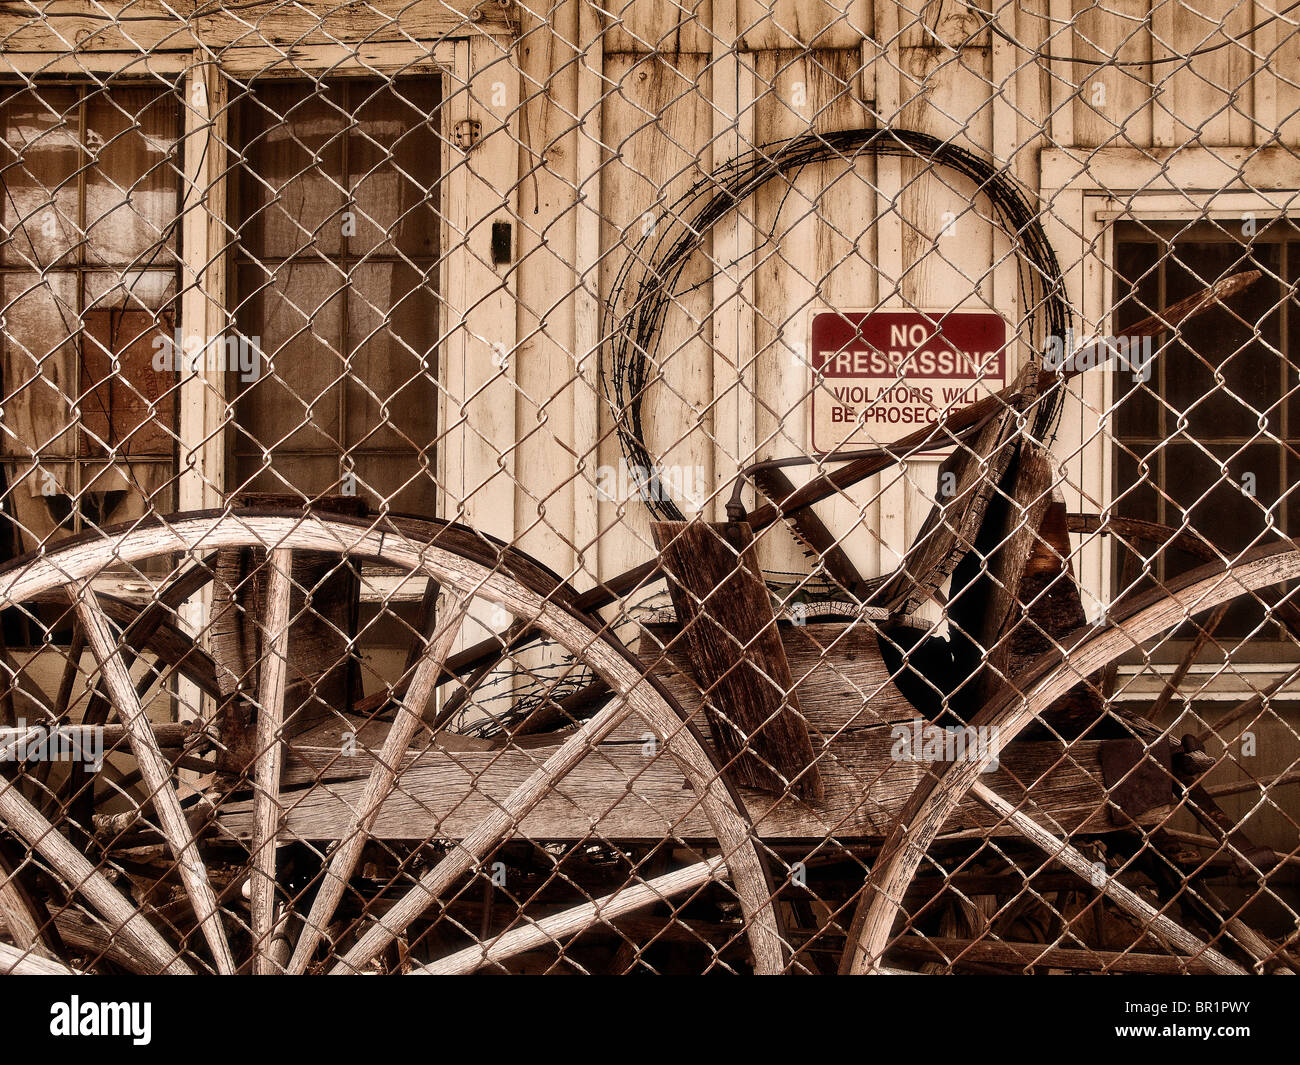 Found still-life of wheels & antique objects - Stock Image